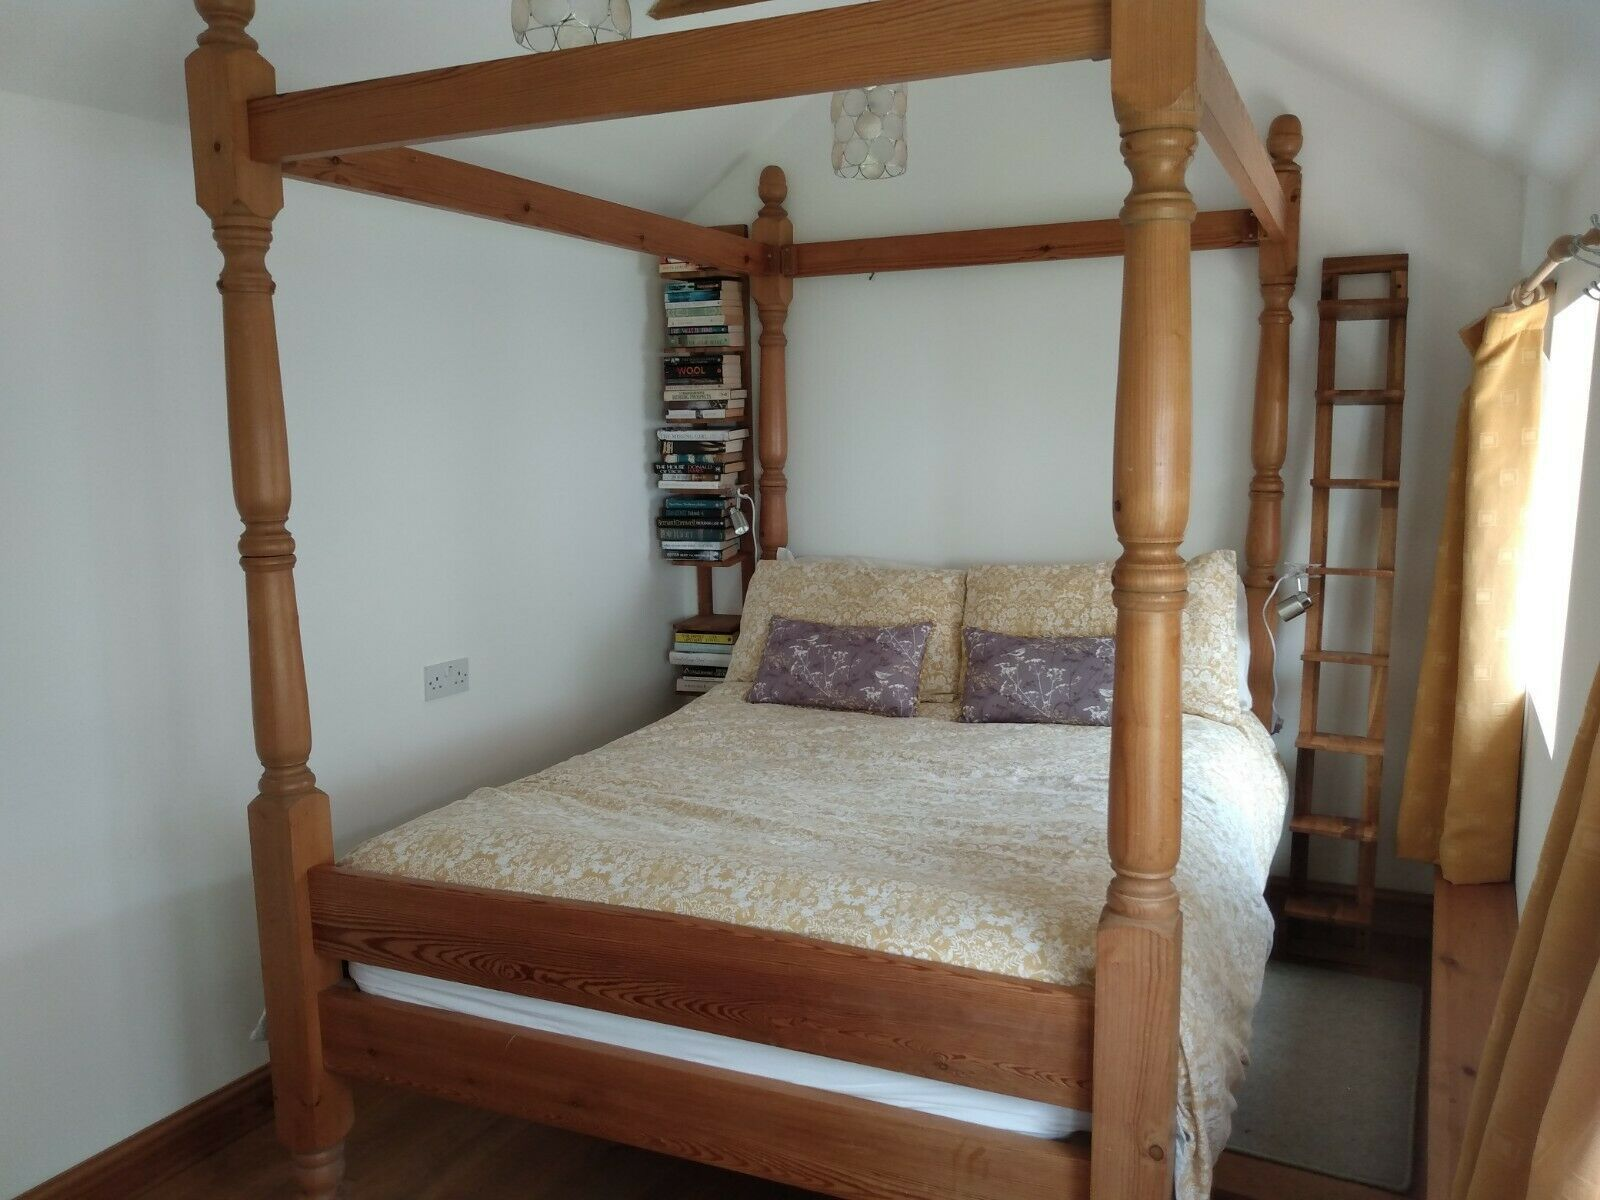 Double Four Poster Bed In 2020 Four Poster Bed Frame Four Poster Bed Four Poster